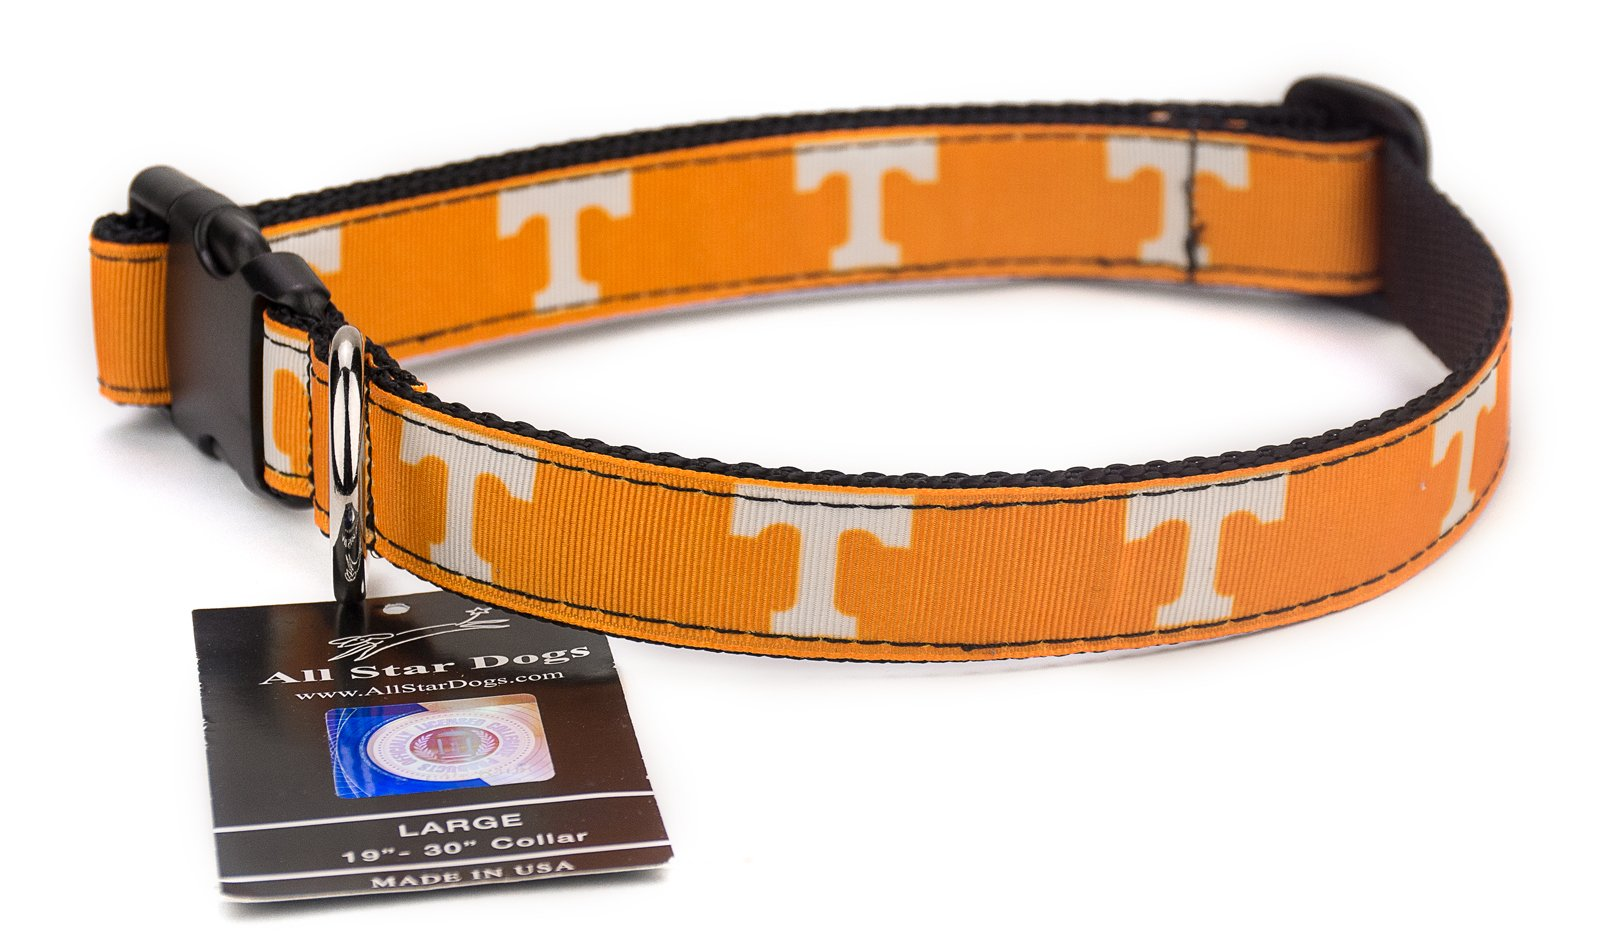 All Star Dogs Tennessee Volunteers Ribbon Dog Collar - Extra Small